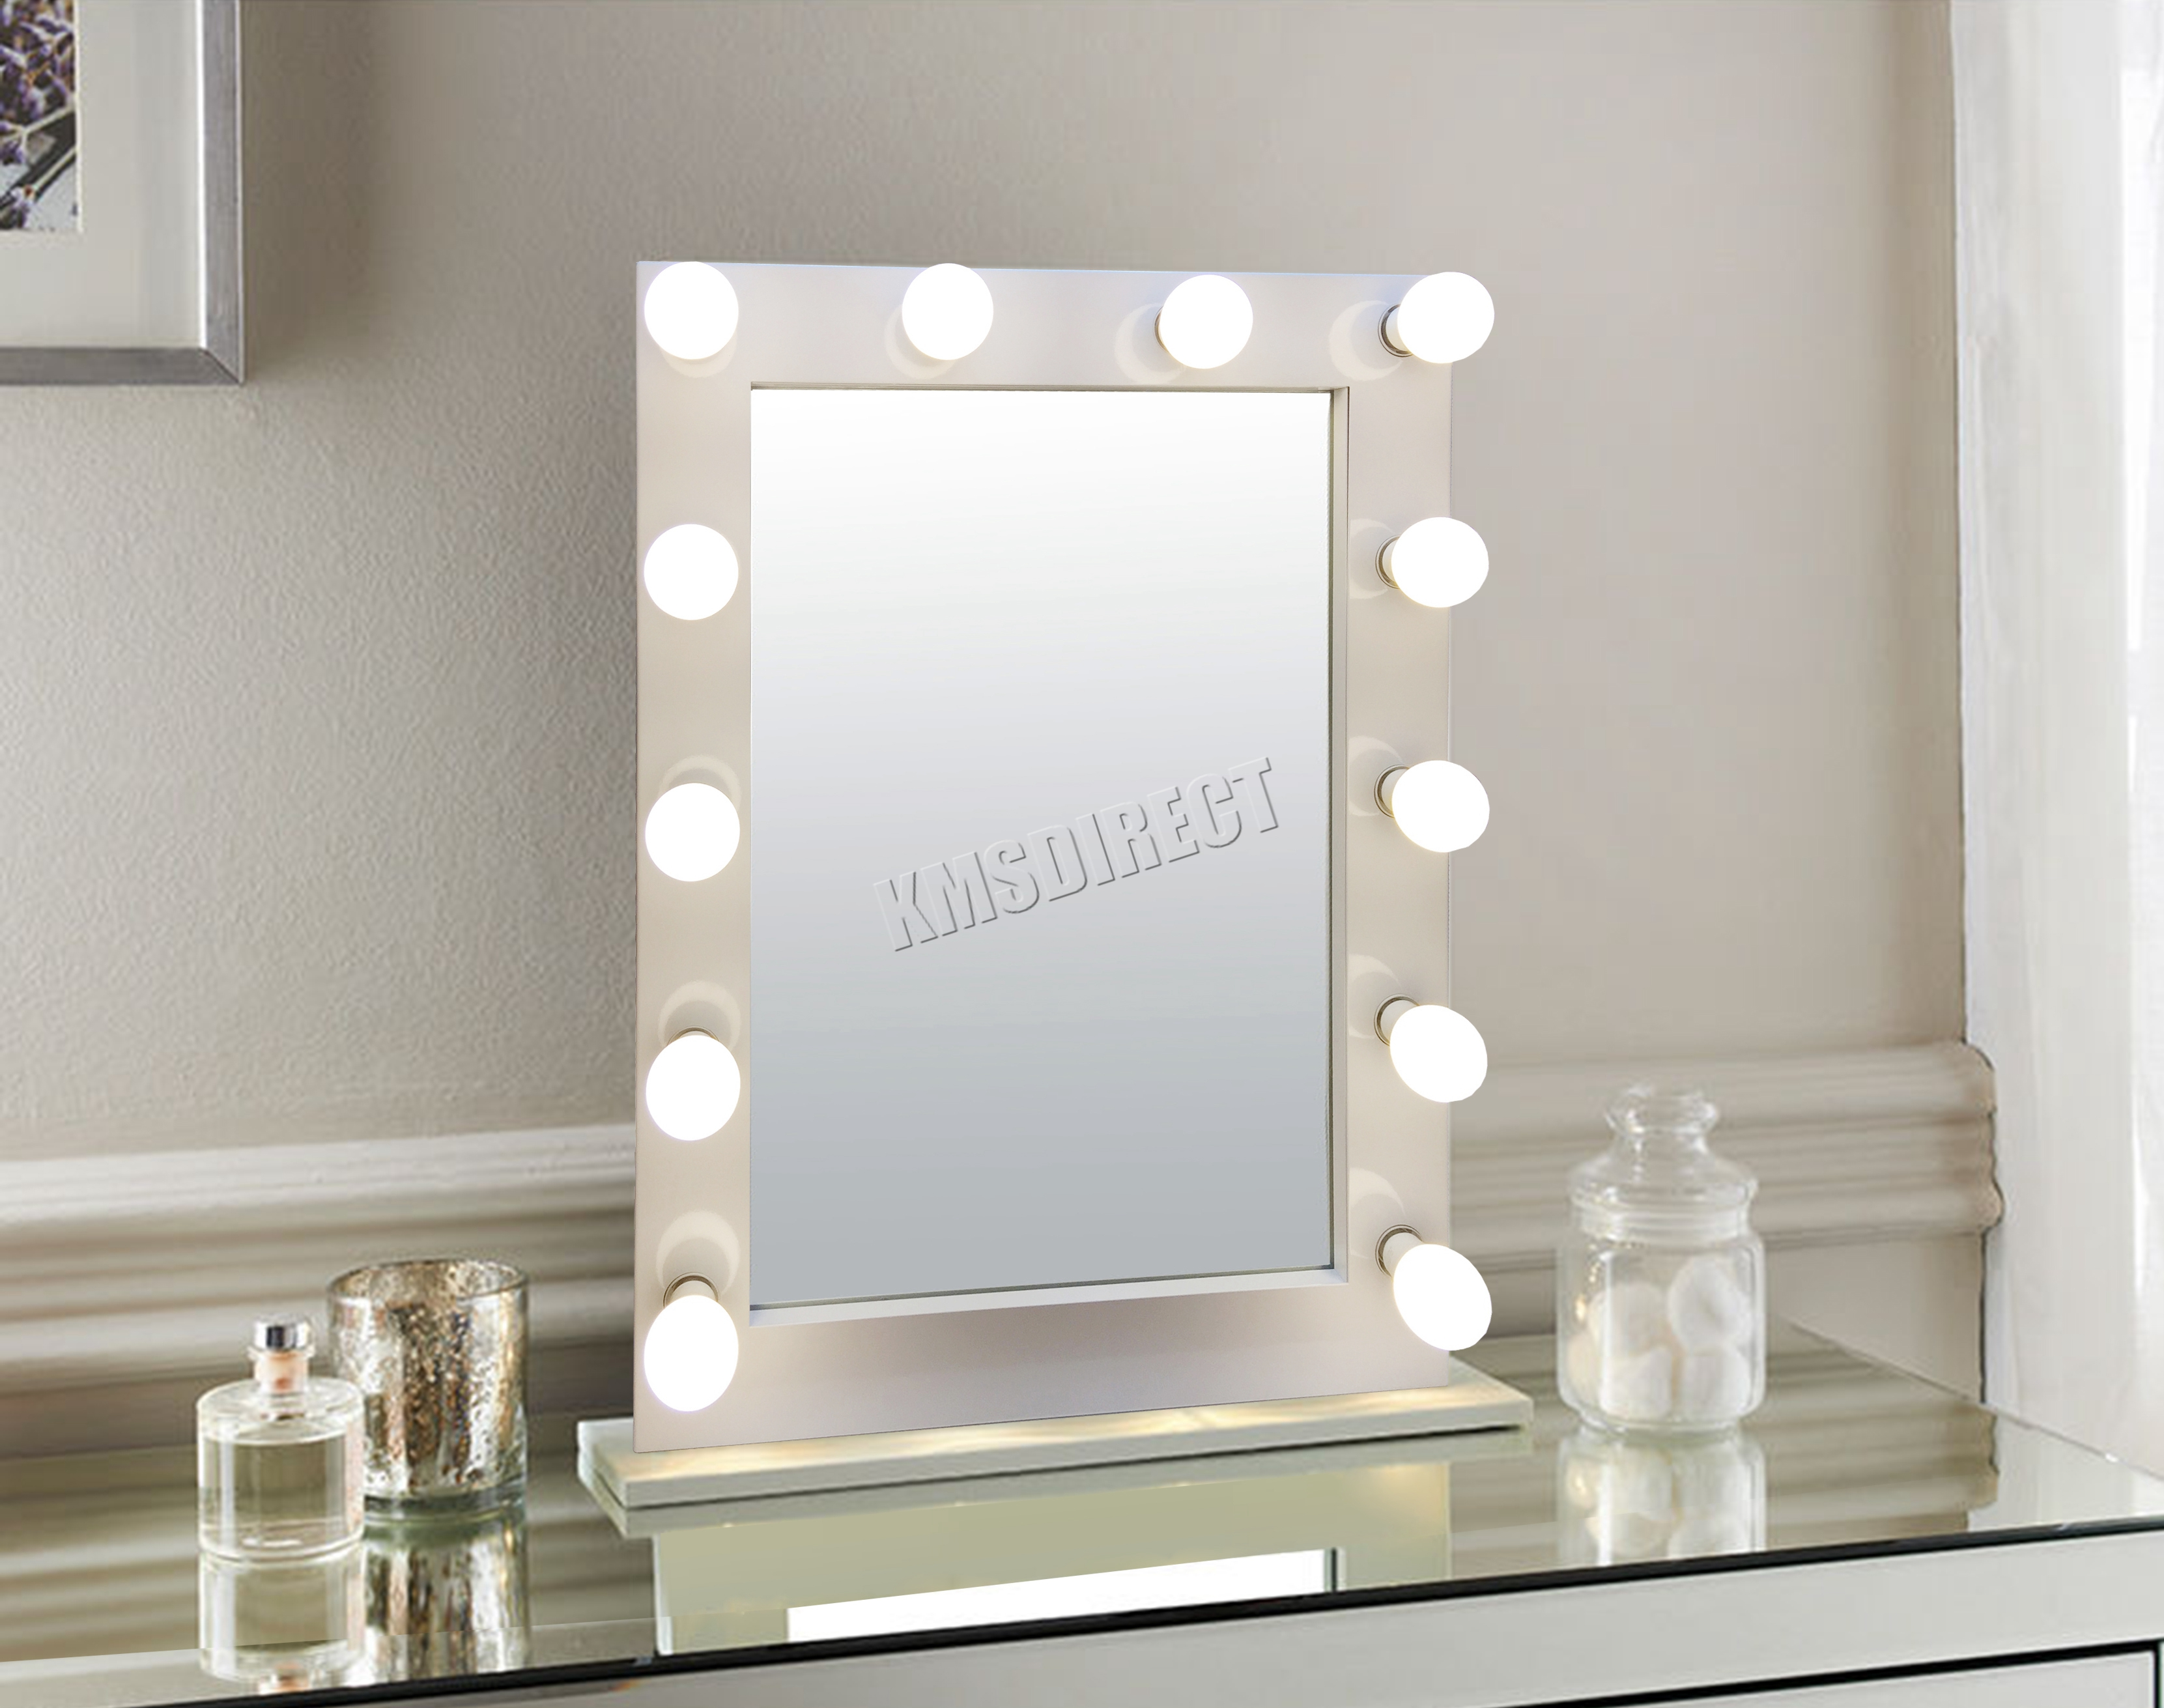 Led Beauty Mirror Foxhunter Makeup Mirror Led 12 Bulbs Dimmer Light Cosmetic